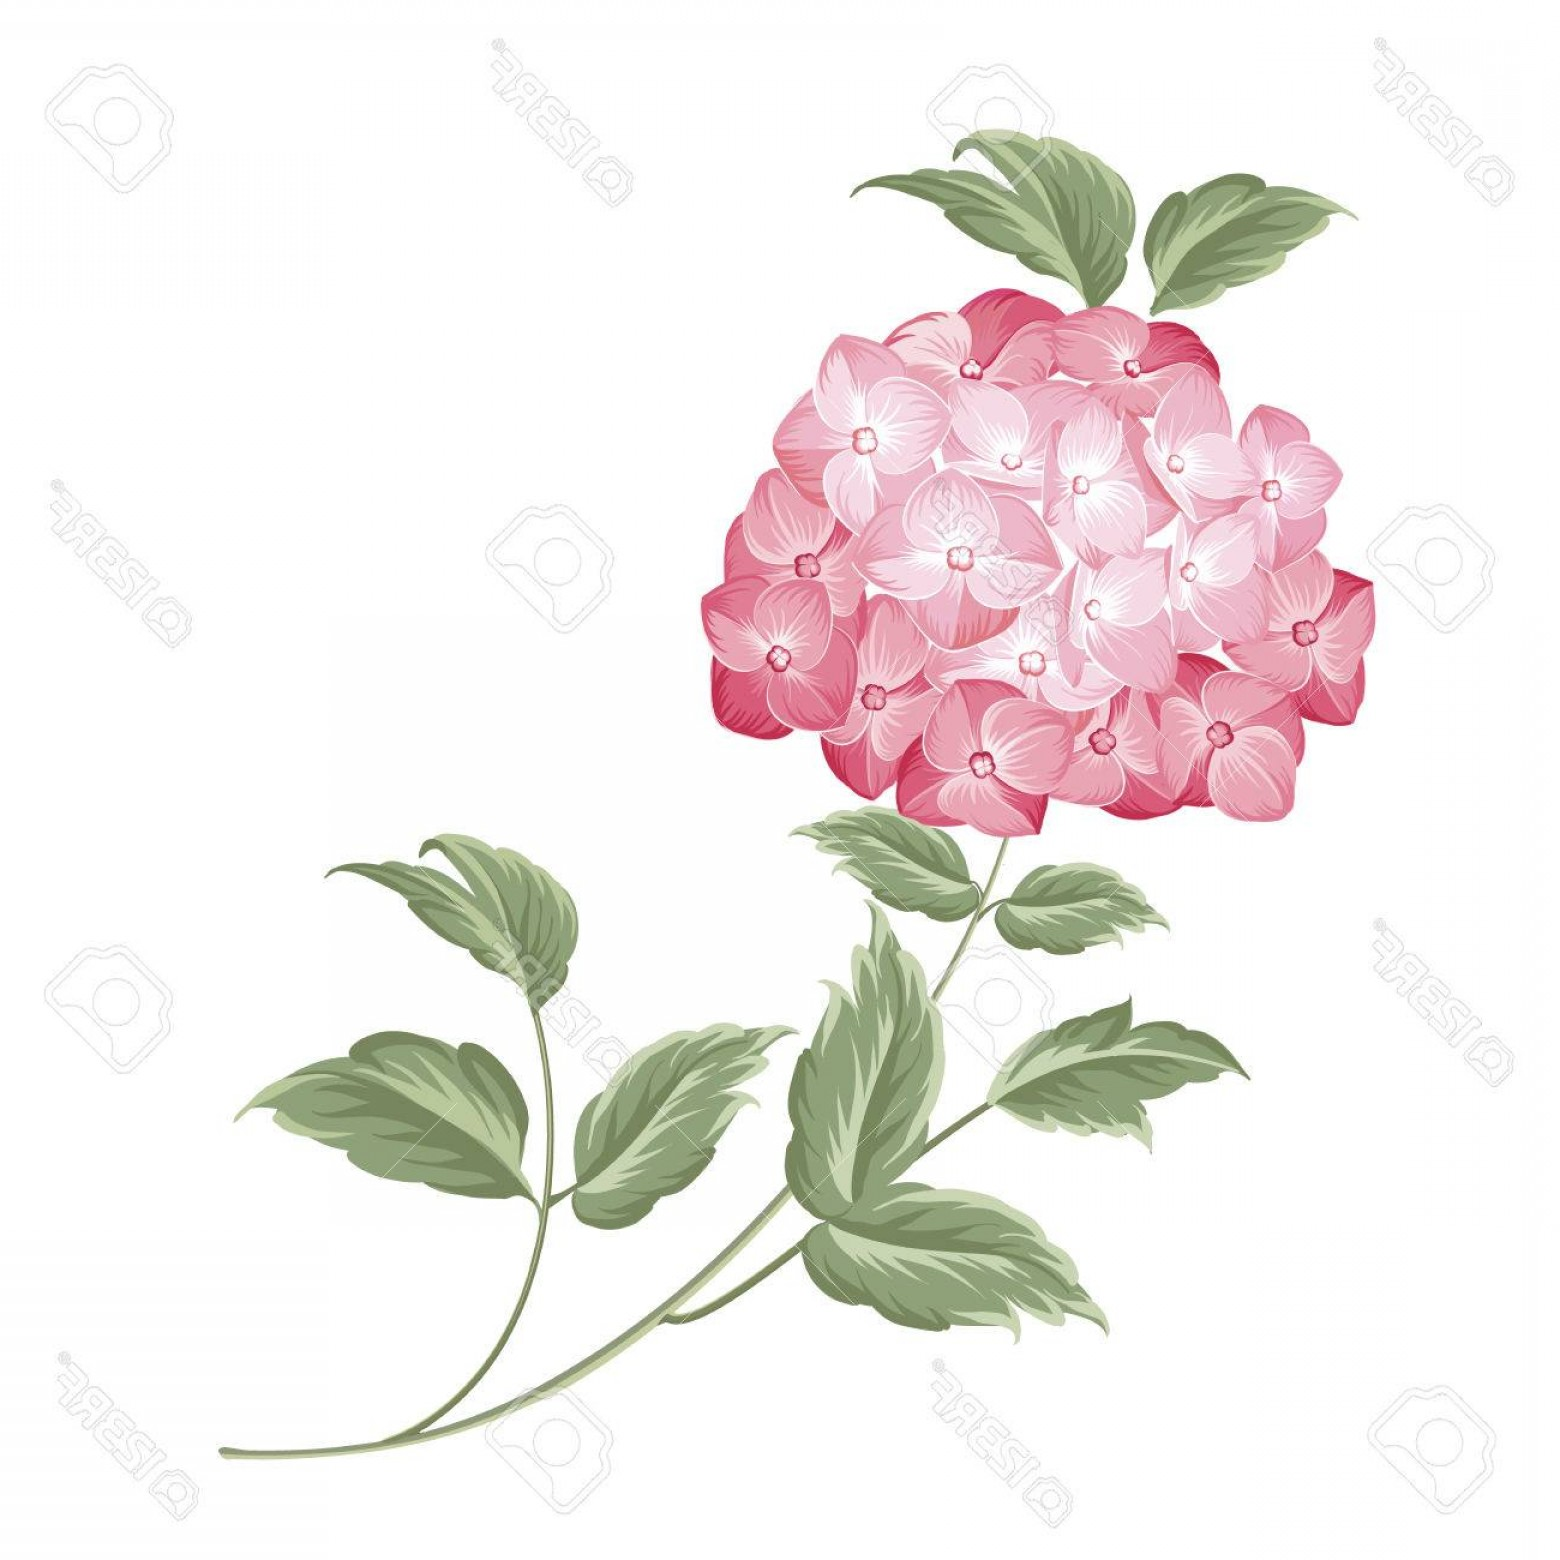 Vector Mop Flower: Photostock Vector Blooming Flower Hydrangea On White Background Single Hortensia Flower Mop Head Hydrangea Flower Isol